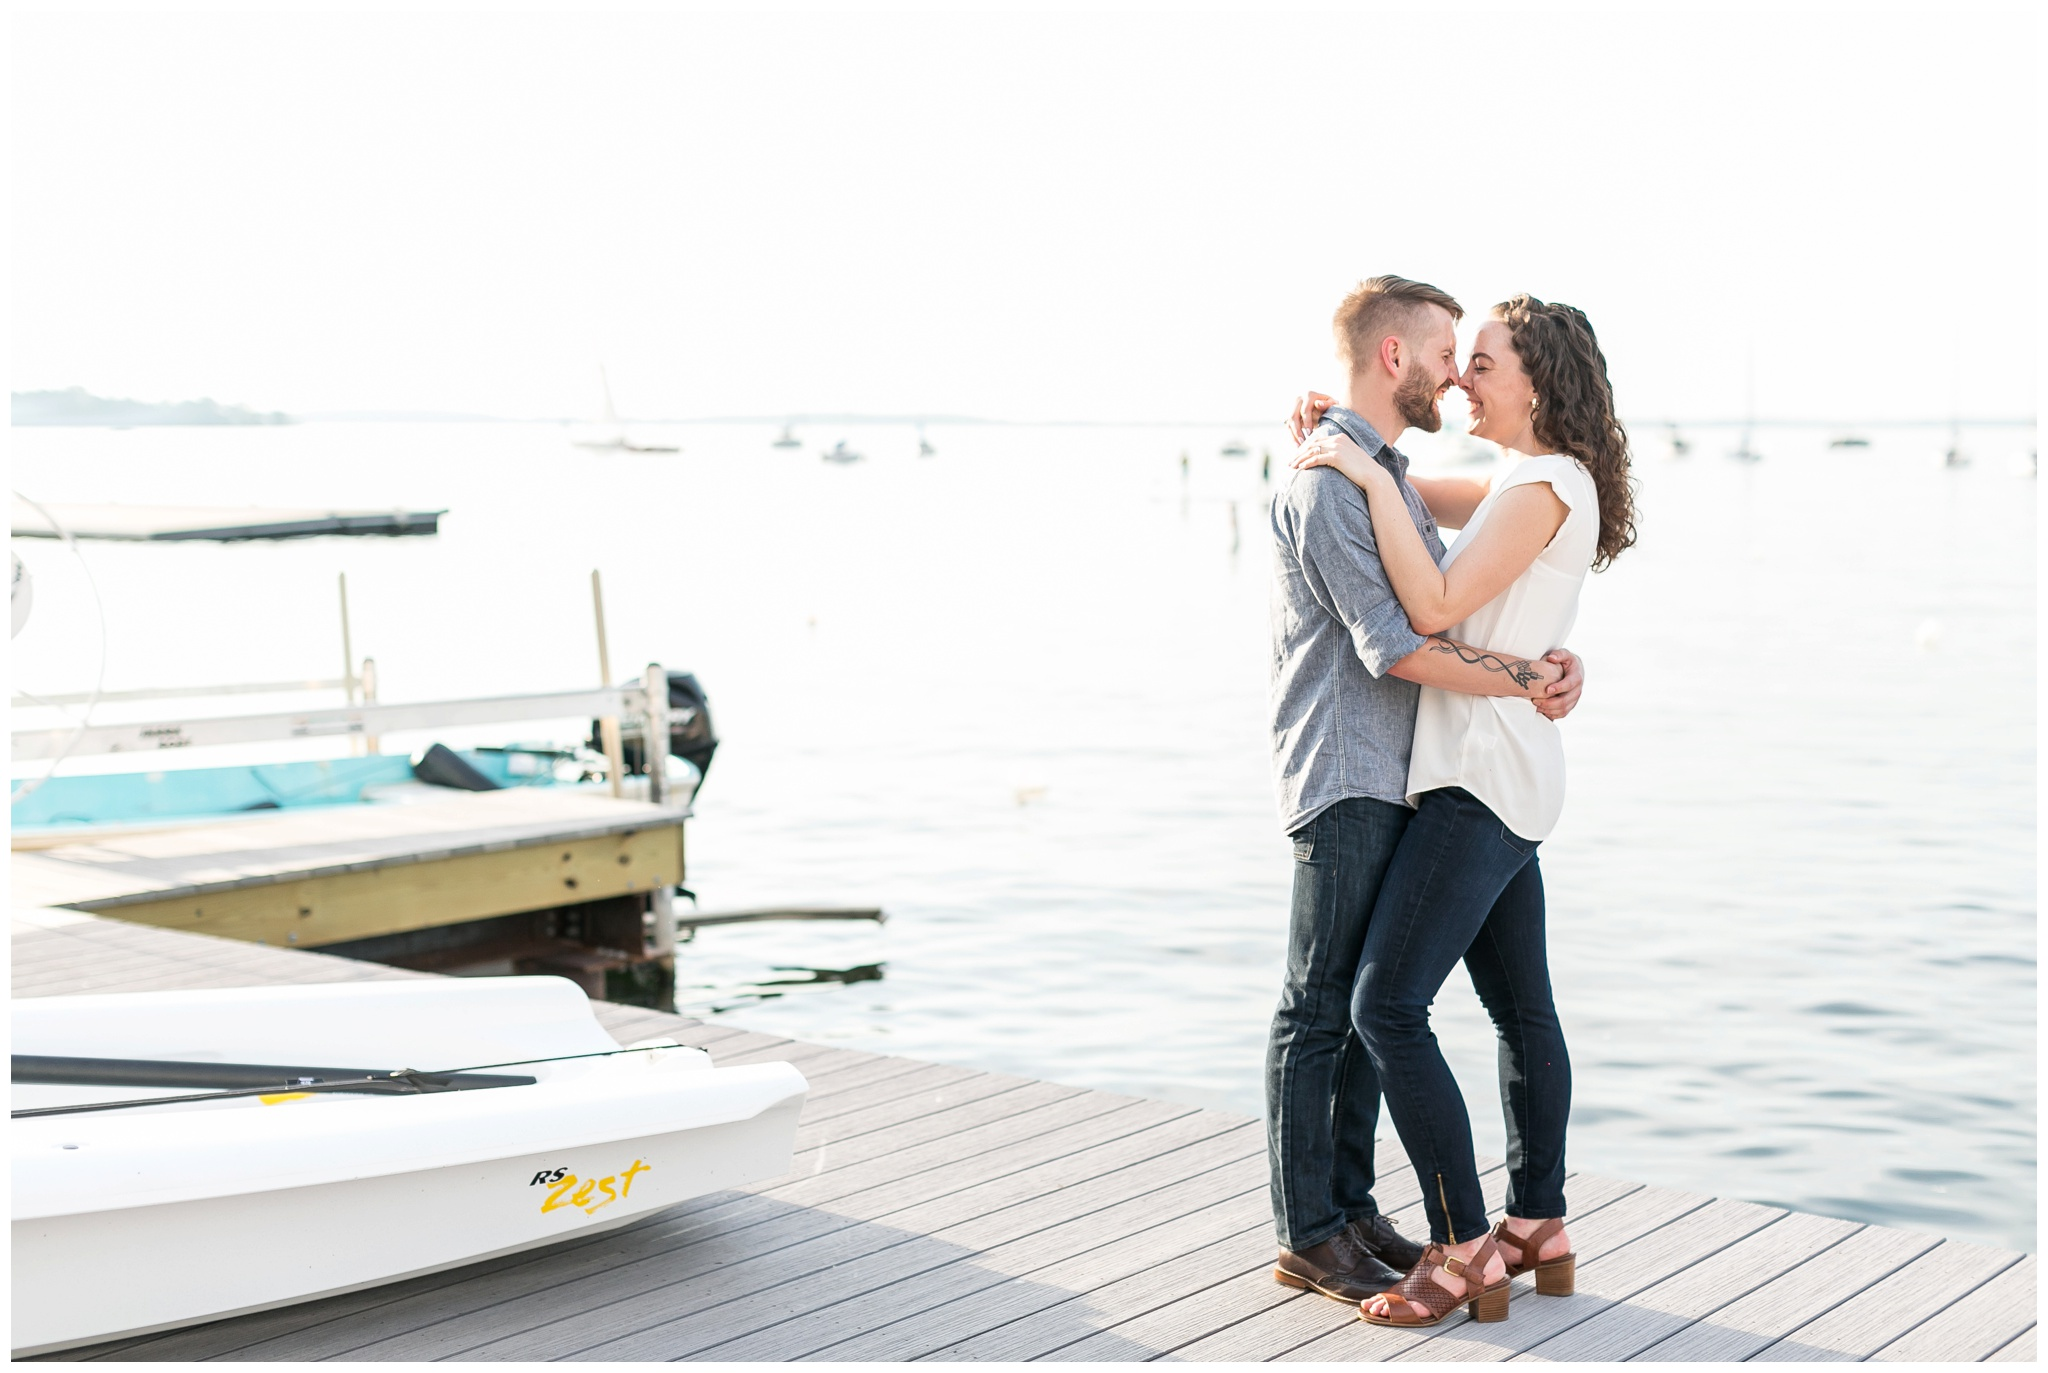 memorial_union_engagement_session_madison_wisconsin_photographers_3793.jpg